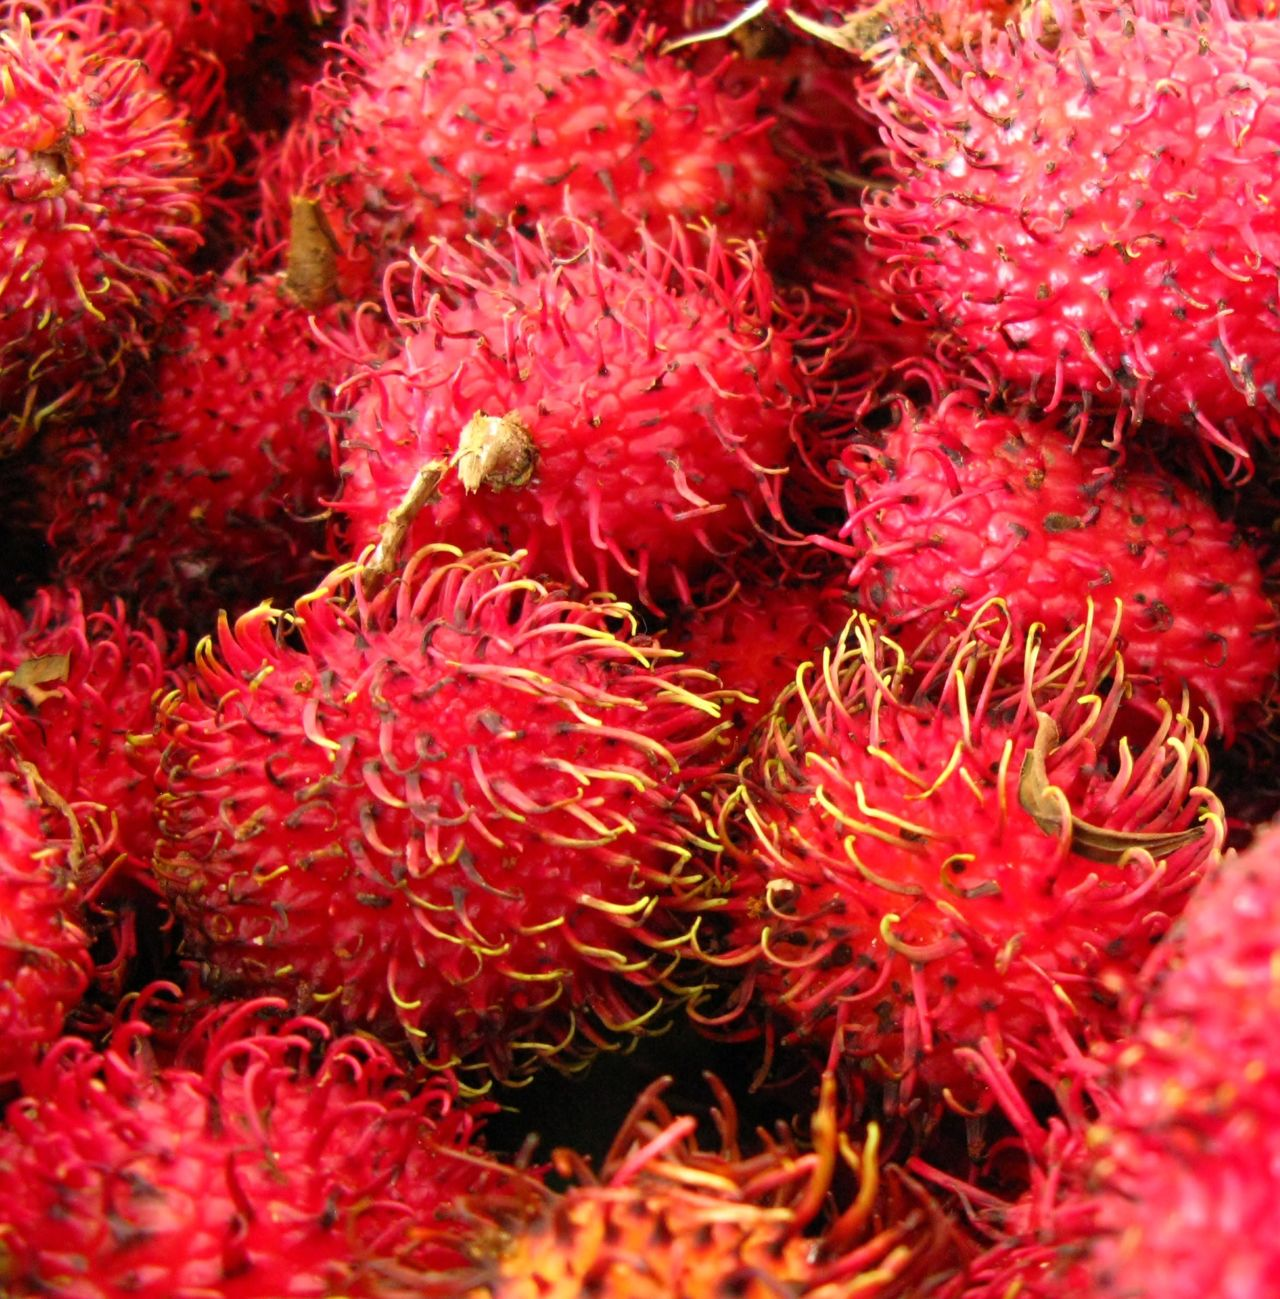 Backgrounds Close-up Day Food Food And Drink Freshness Fruit Full Frame Healthy Eating Lychee No People Outdoors Rambutan Red Exotic Fruits Fireball